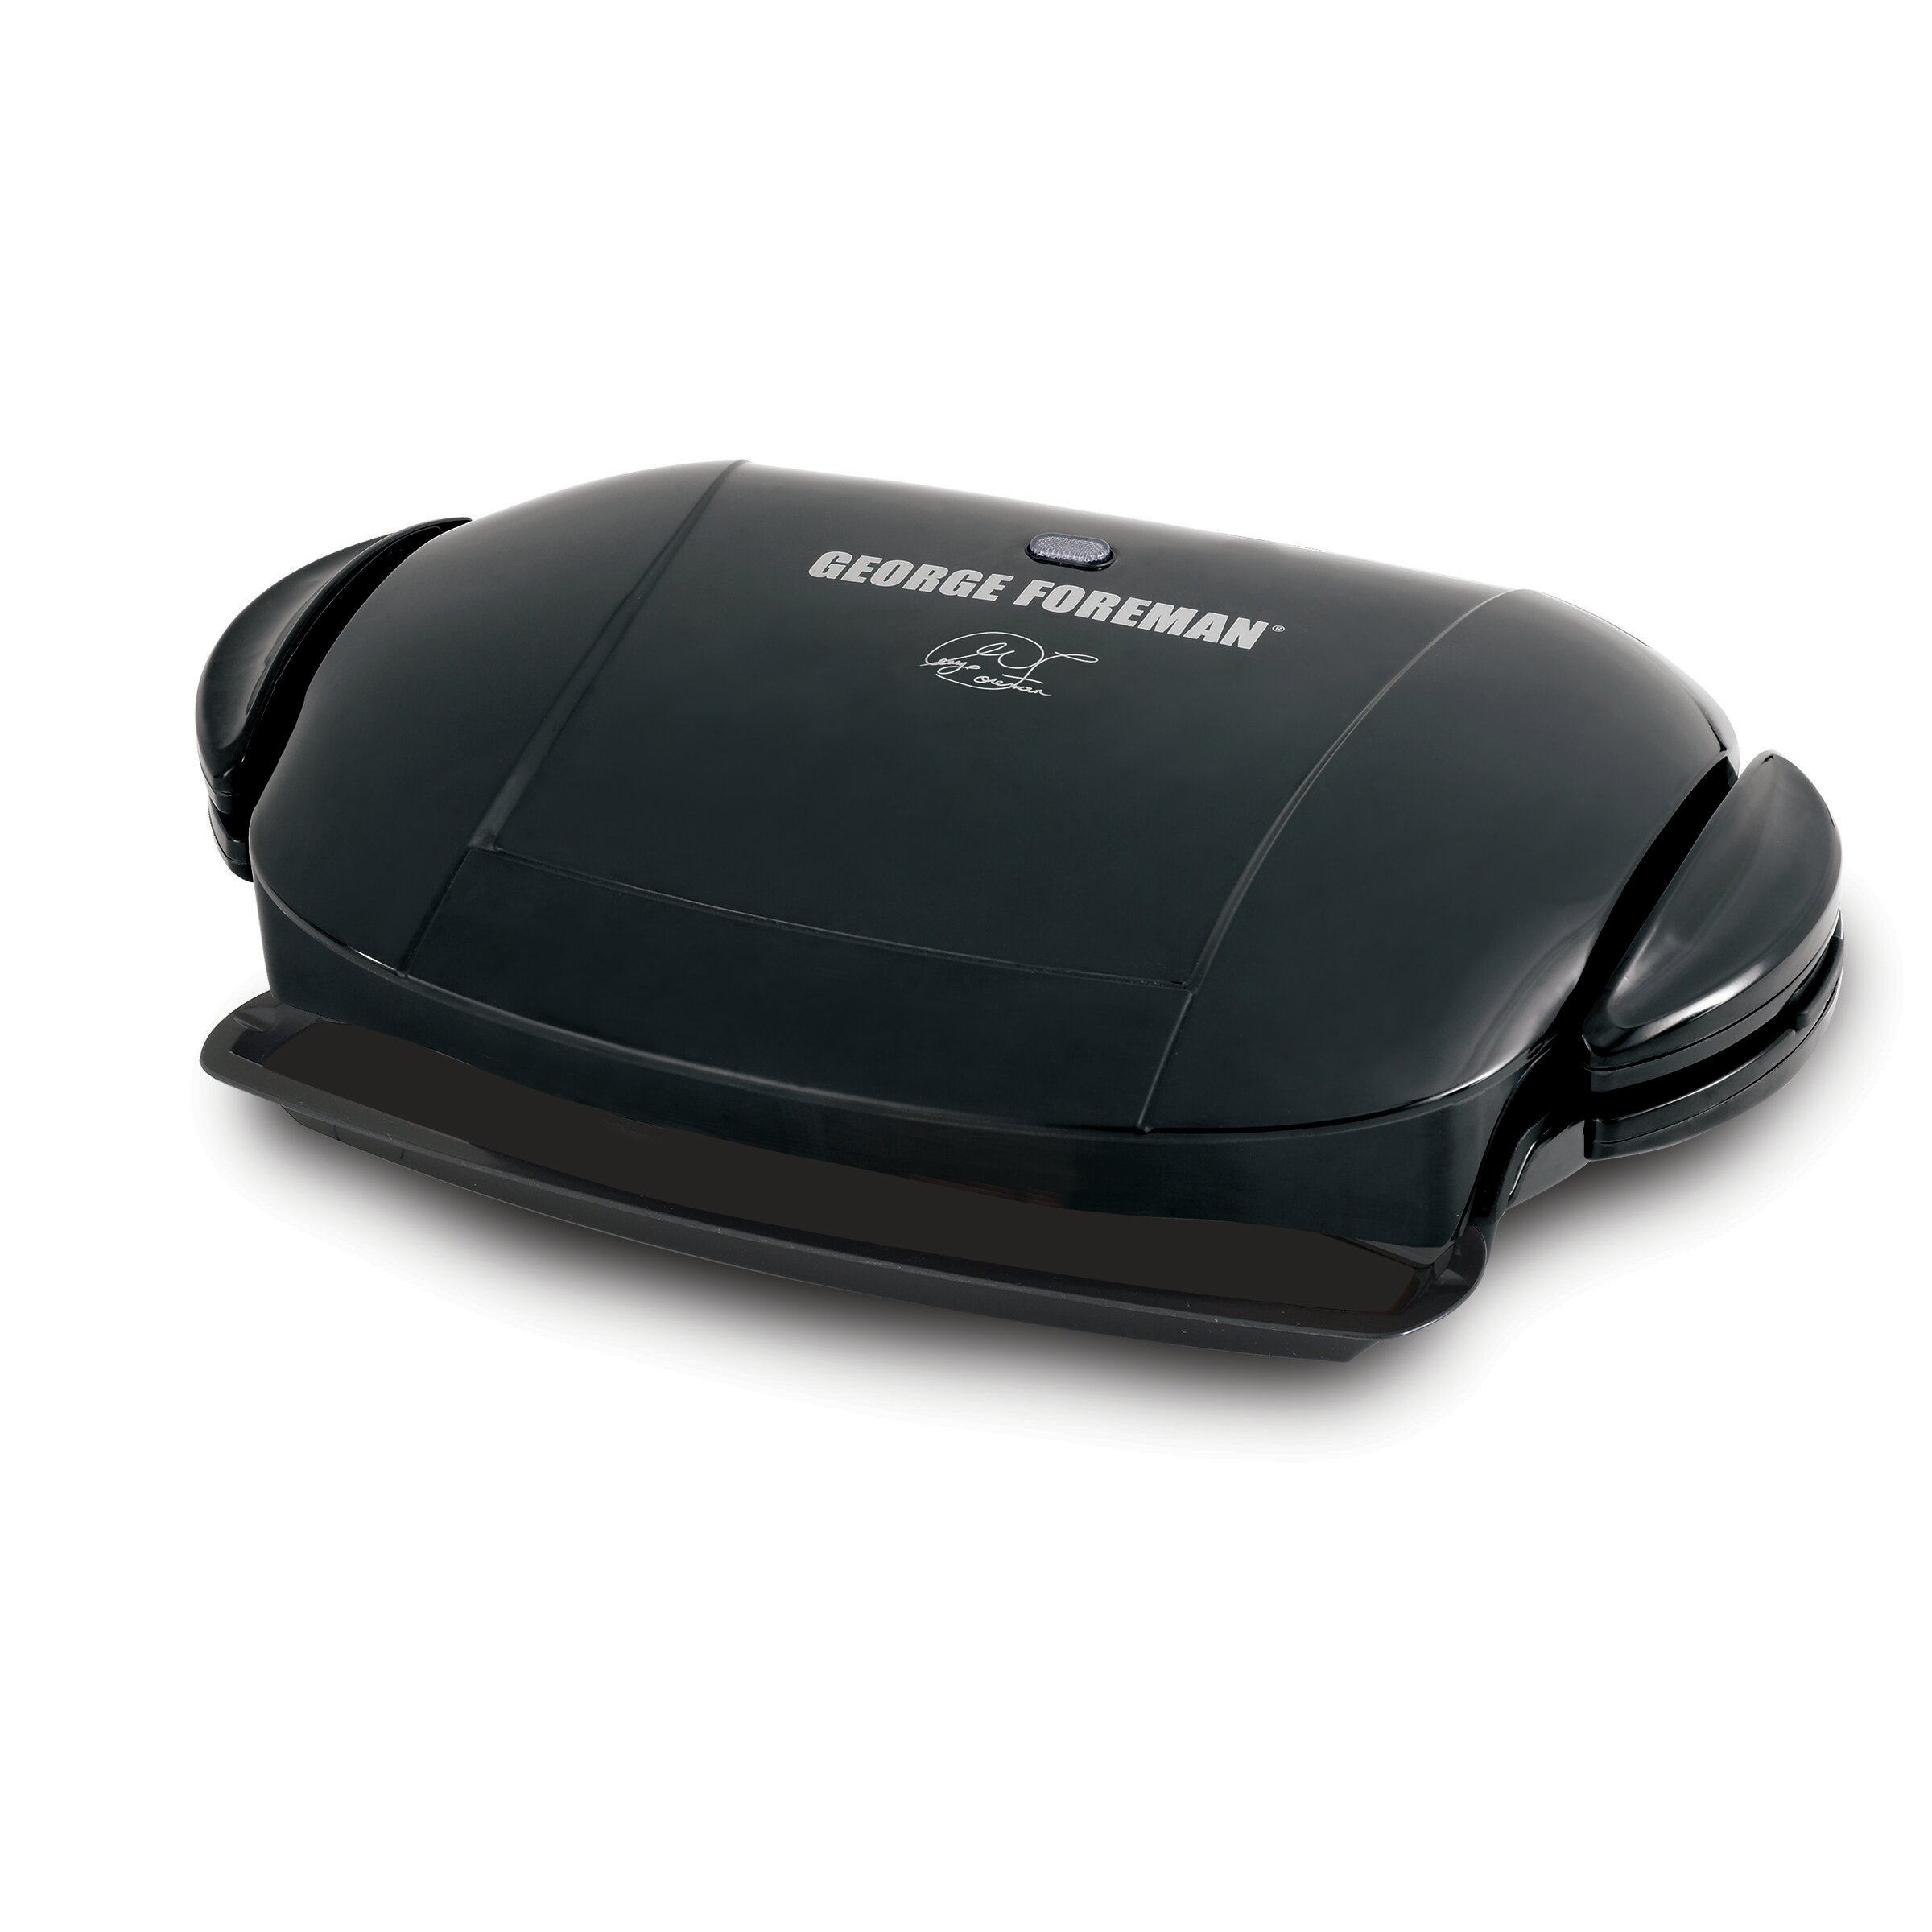 George foreman removable plate grill reviews wayfair - George foreman replacement grill plates ...